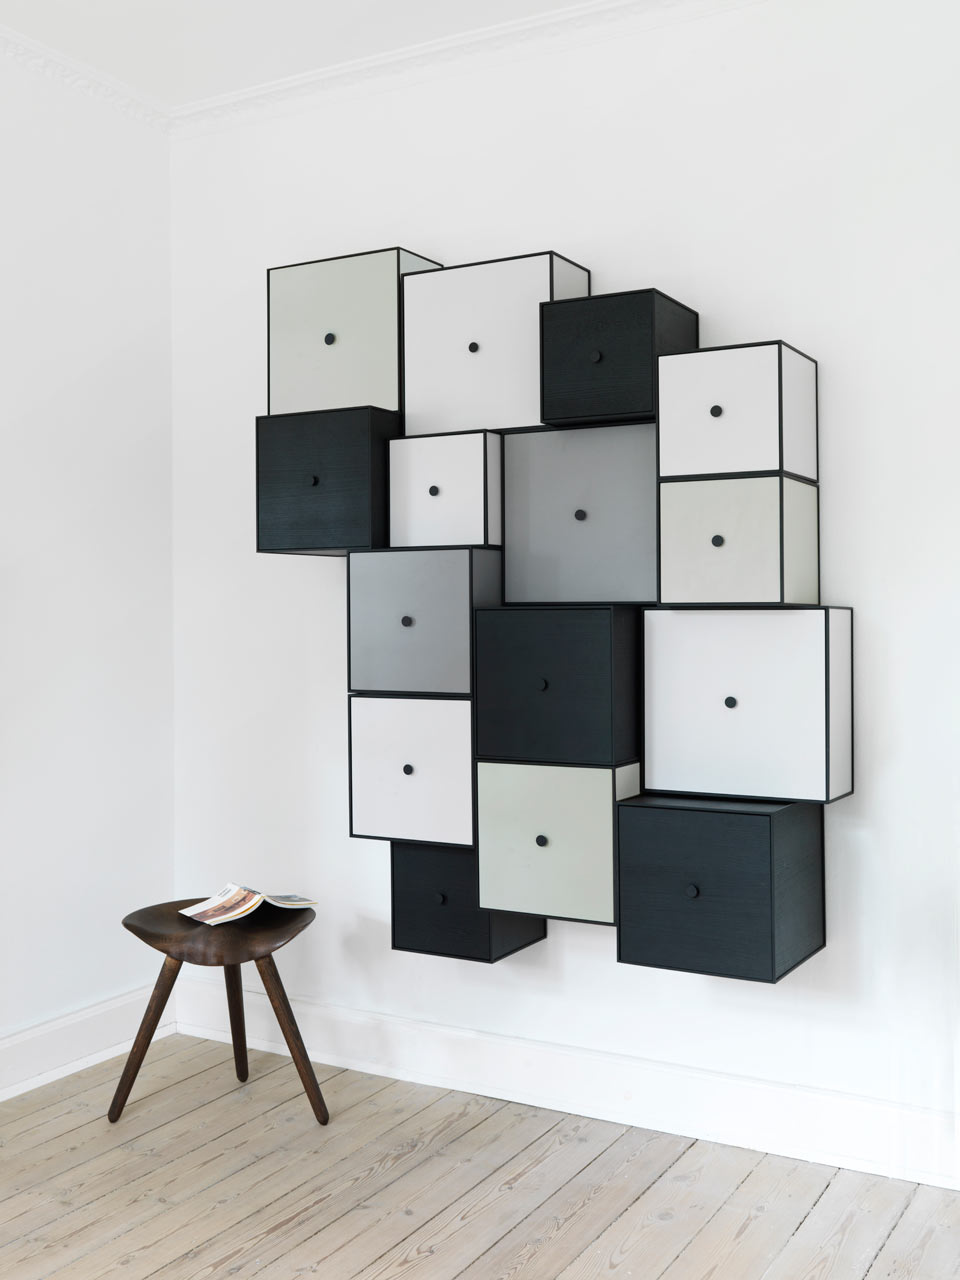 Storage Modules That Look Two-Dimensional